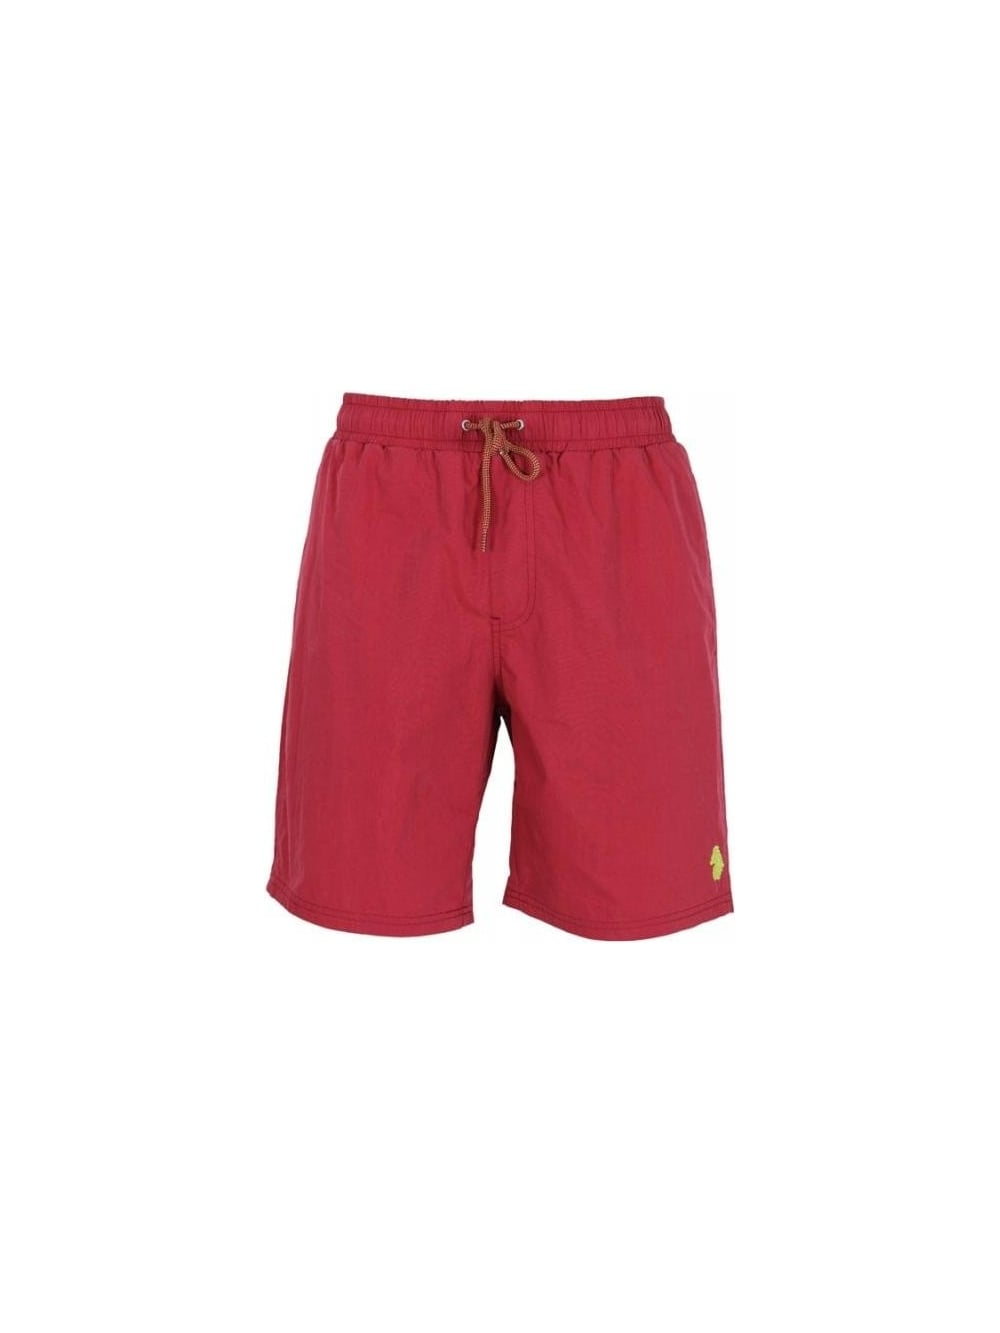 a594cf7adc Luke 1977 Cagy Knee Length Swim SHorts in Sports Red - Northern Threads